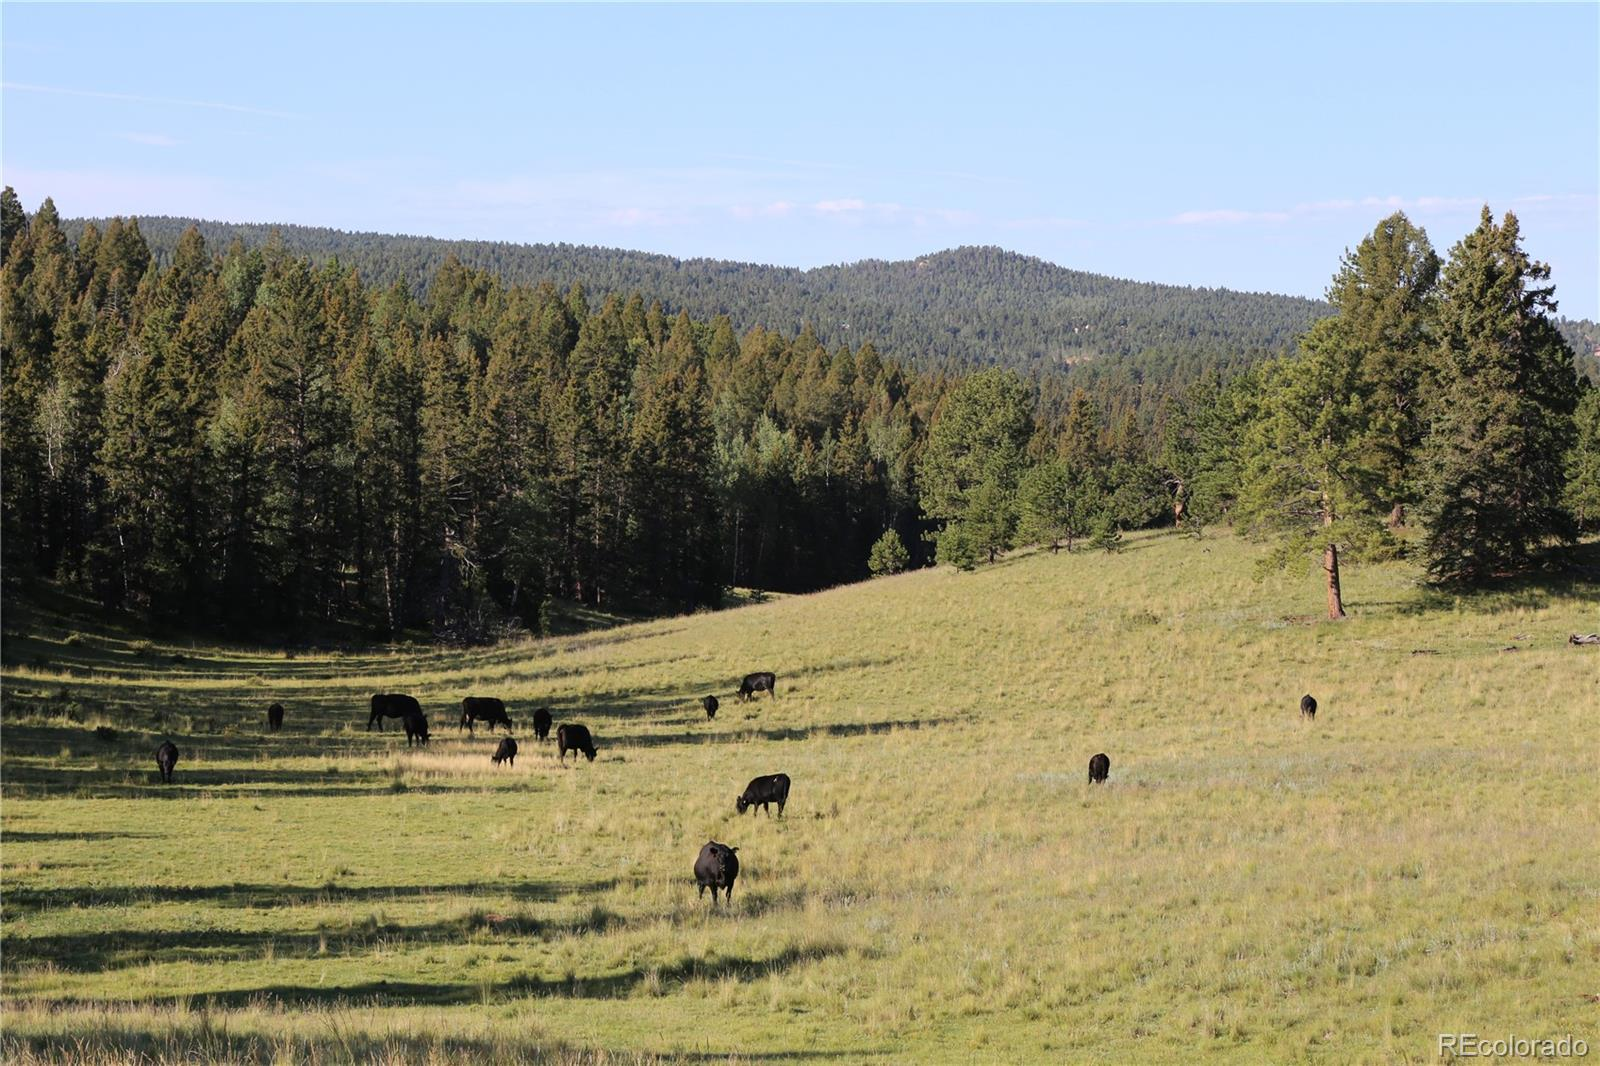 1803 acre Ute Pass Ranch north portion borders Hwy 24 on the south and County 51 on the north. Lake and Pikes Peak views, varied terrain. Historically used for cattle grazing and hunting lease, this property has a resident elk herd. Potential for a future conservation easement.